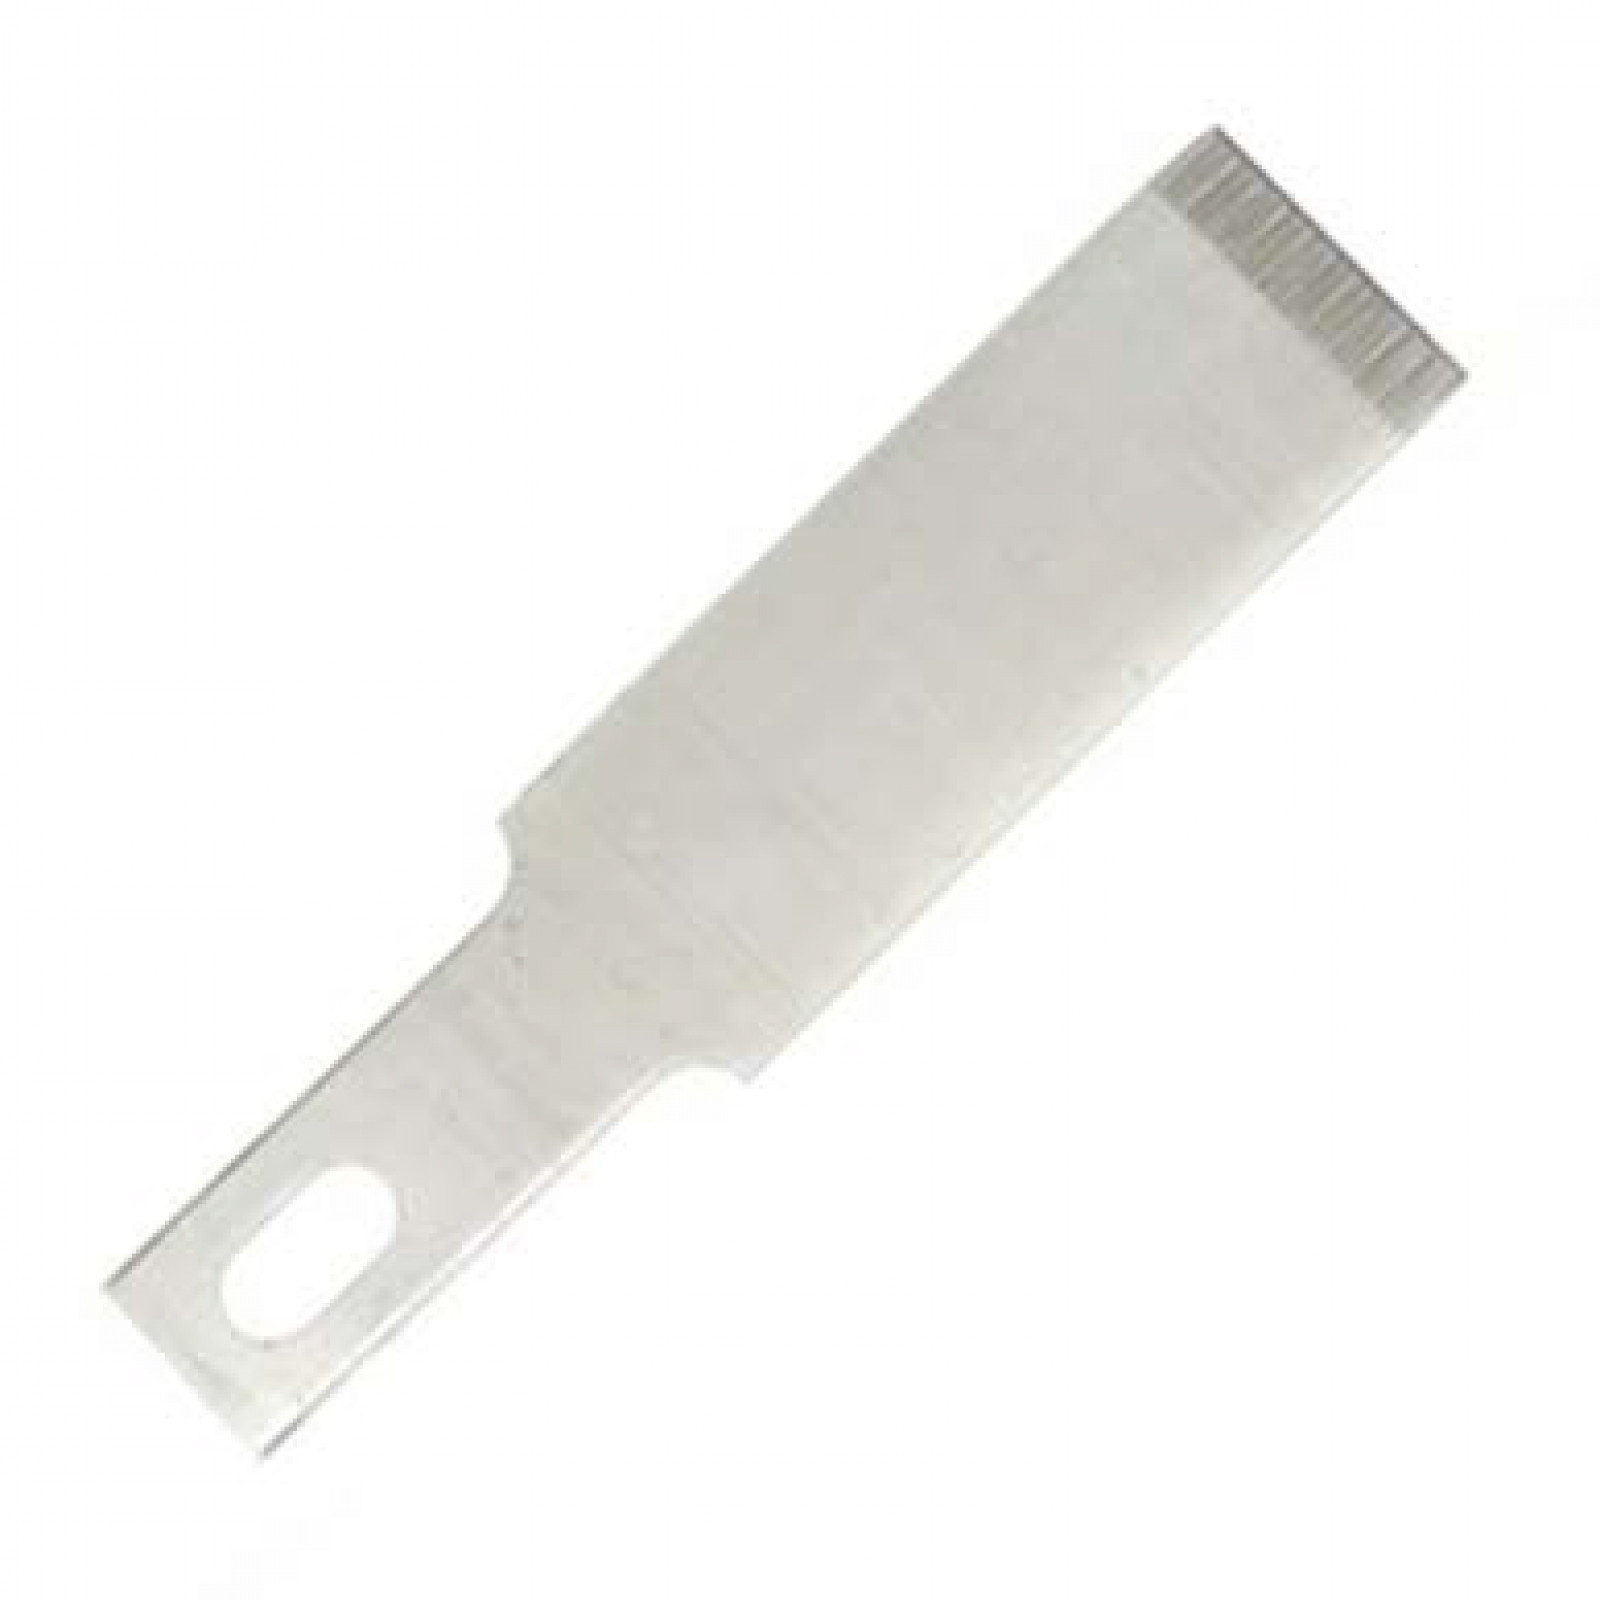 NO.17 SMALL CHISEL EDGE BLADE 3/8  (PKG 5)